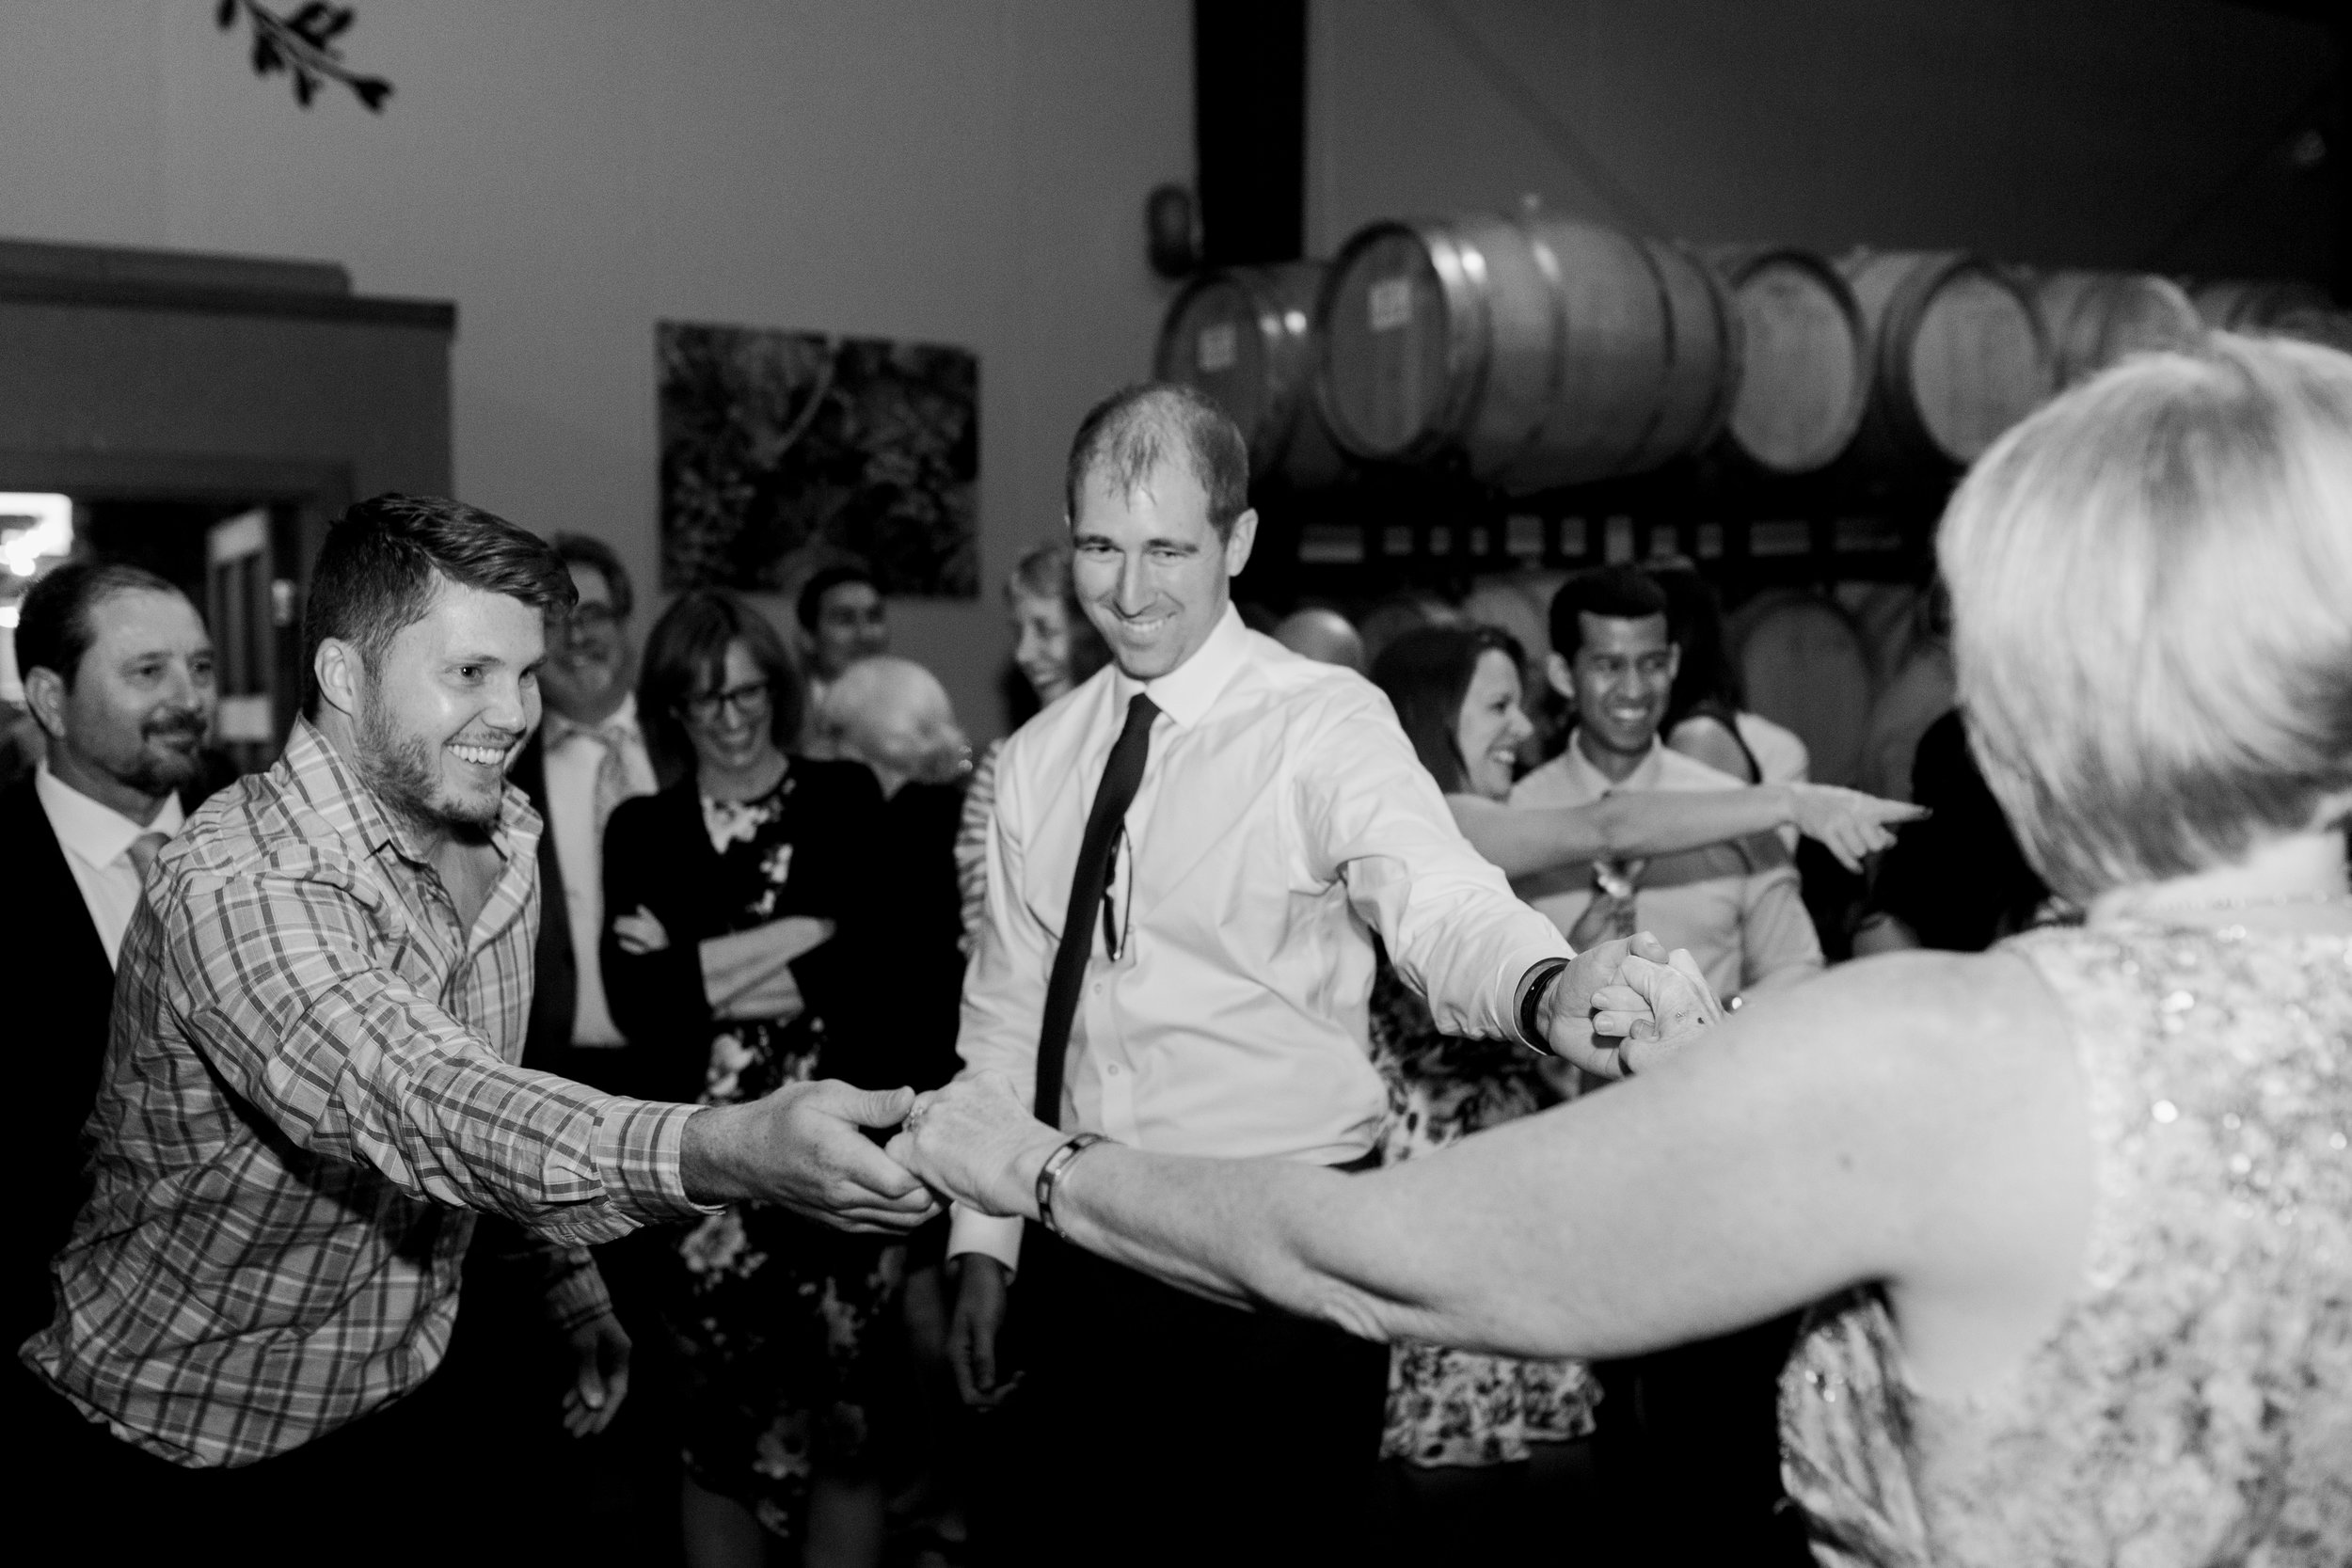 crooked-vine-winery-wedding-in-livermore-california-133.jpg